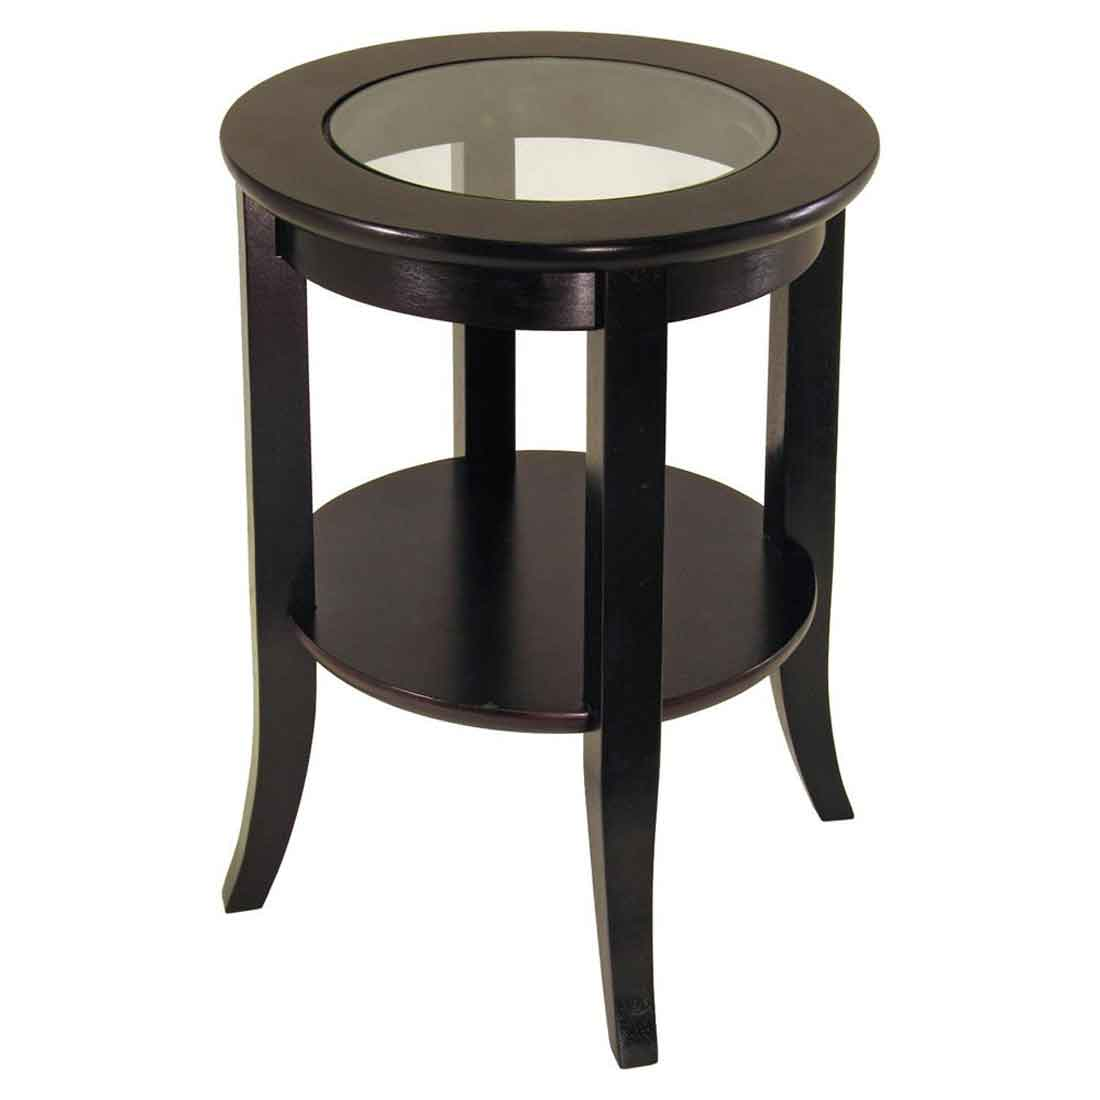 tables target end glass cloth table accent modern round exciting small and base white black plans woodworking pedestal designs furn tablecloth metal distressed covers room living